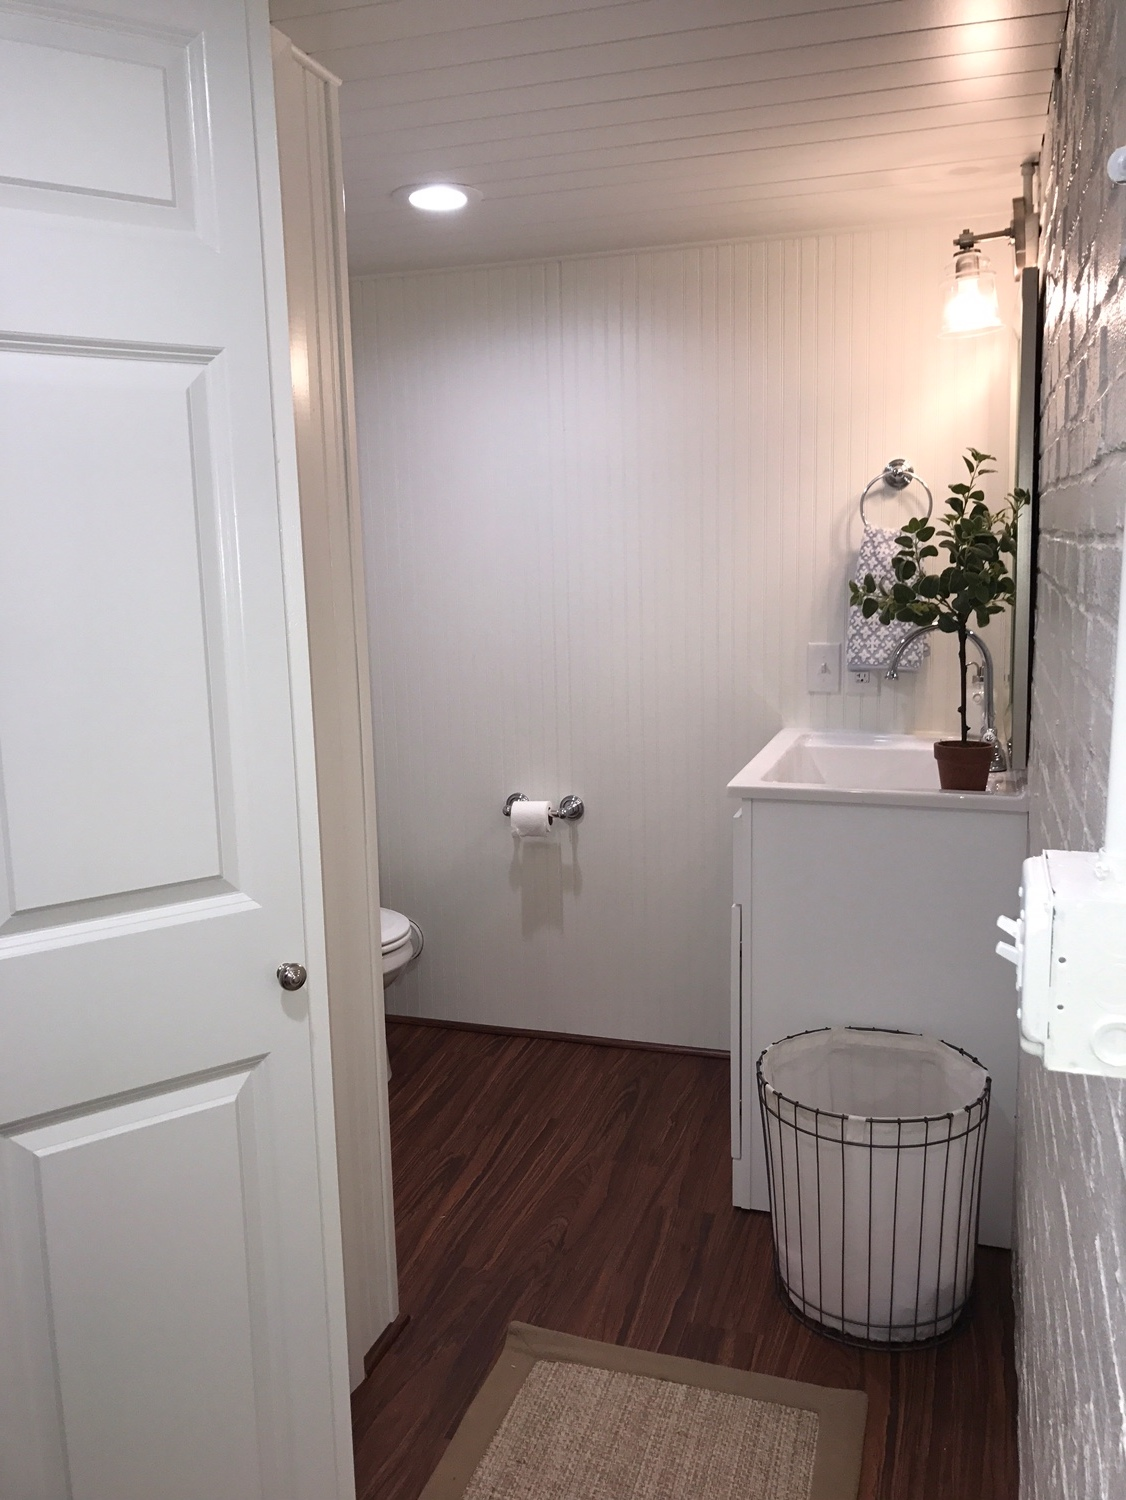 Laundry Room / Bathroom Remodel